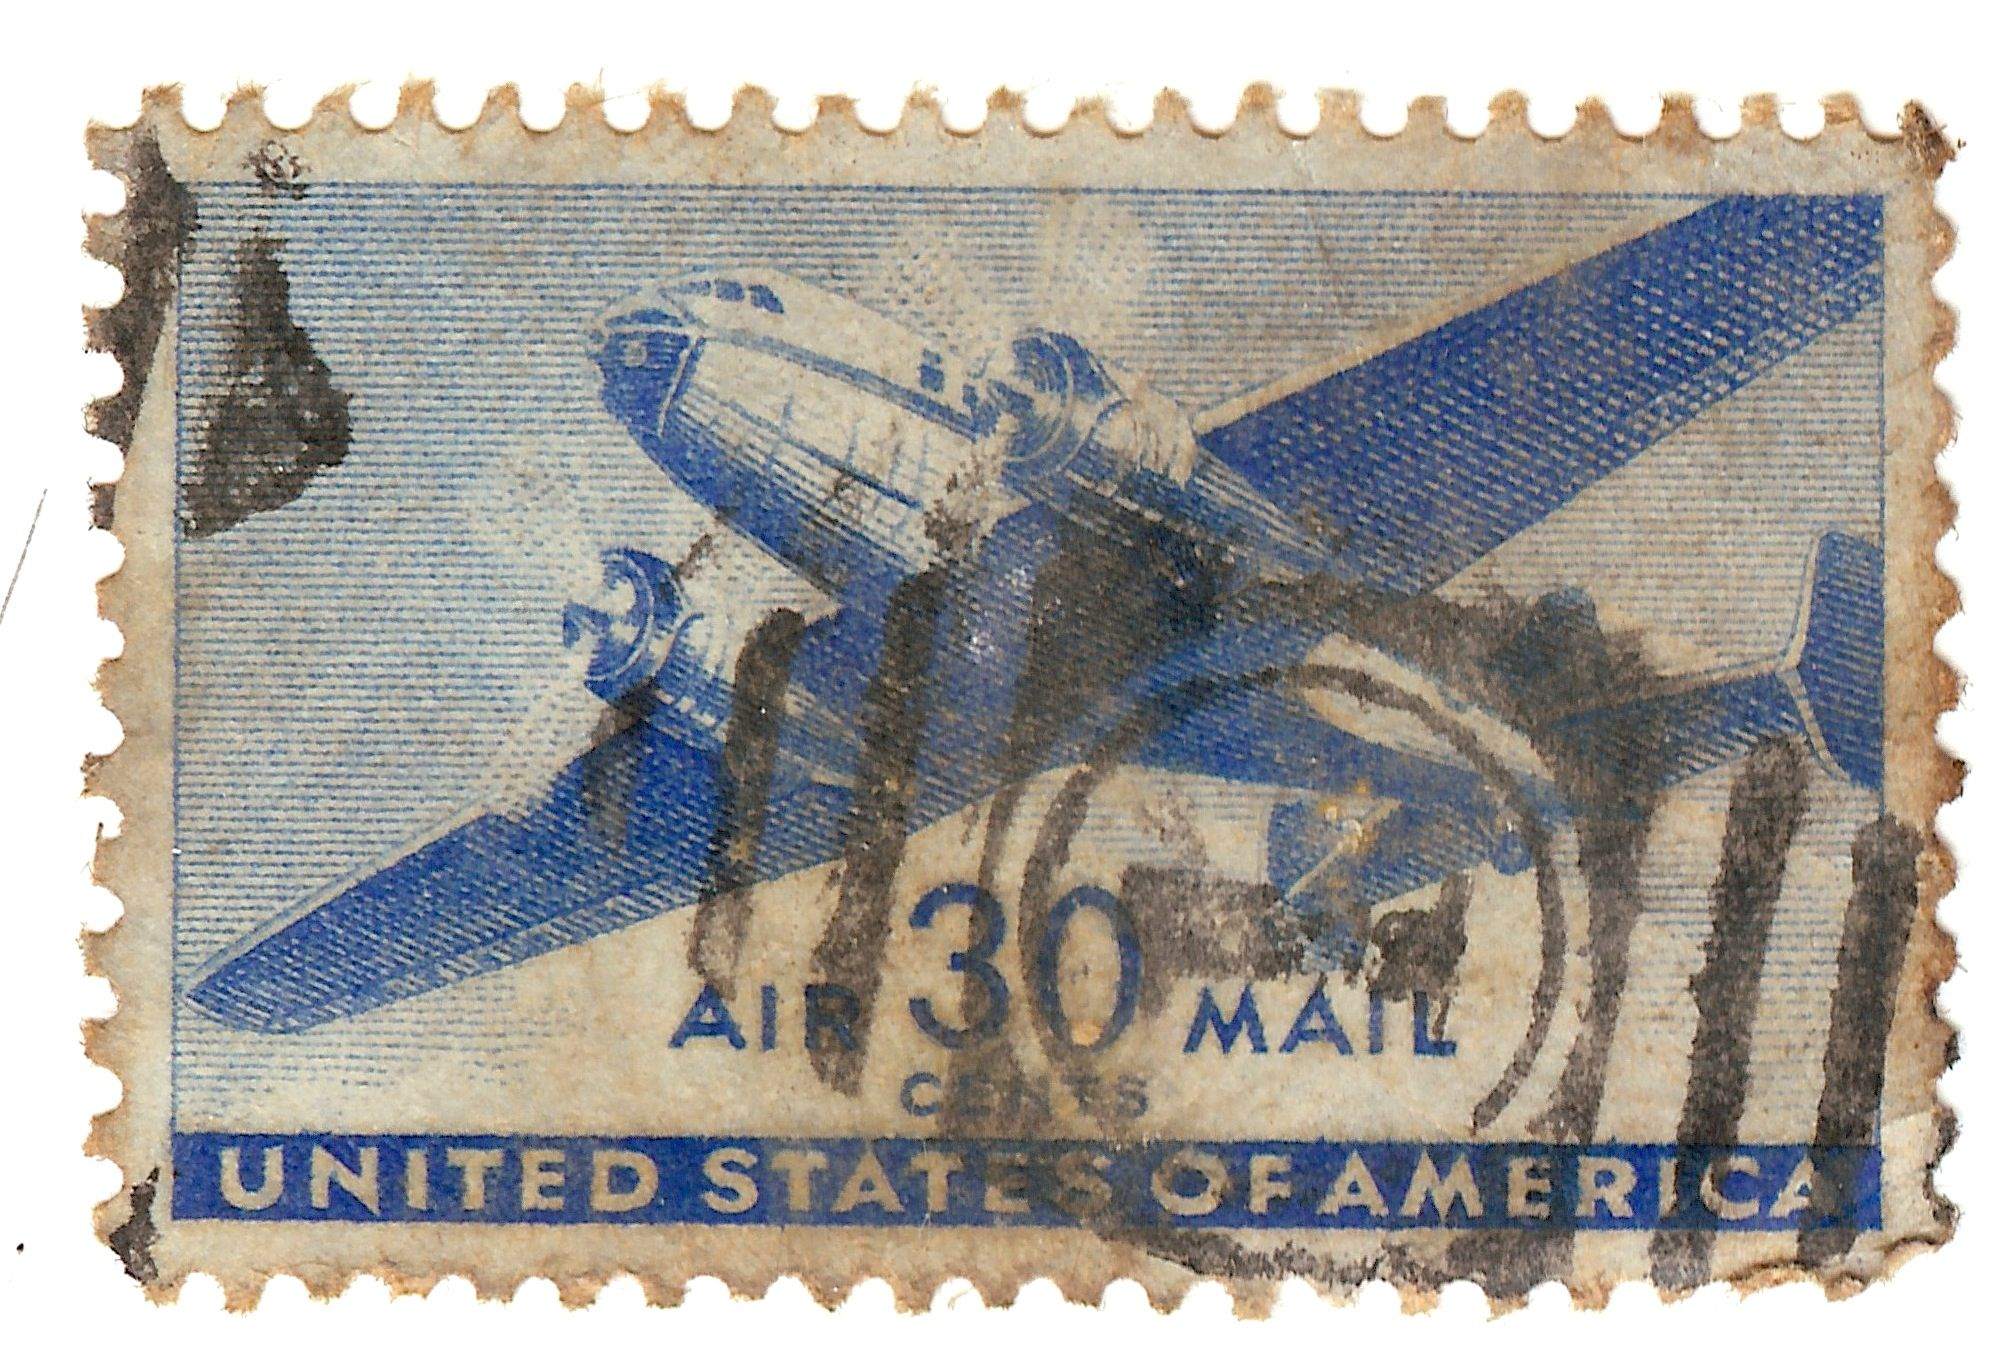 United States postage stamp. For sale: www.papelia.com.br